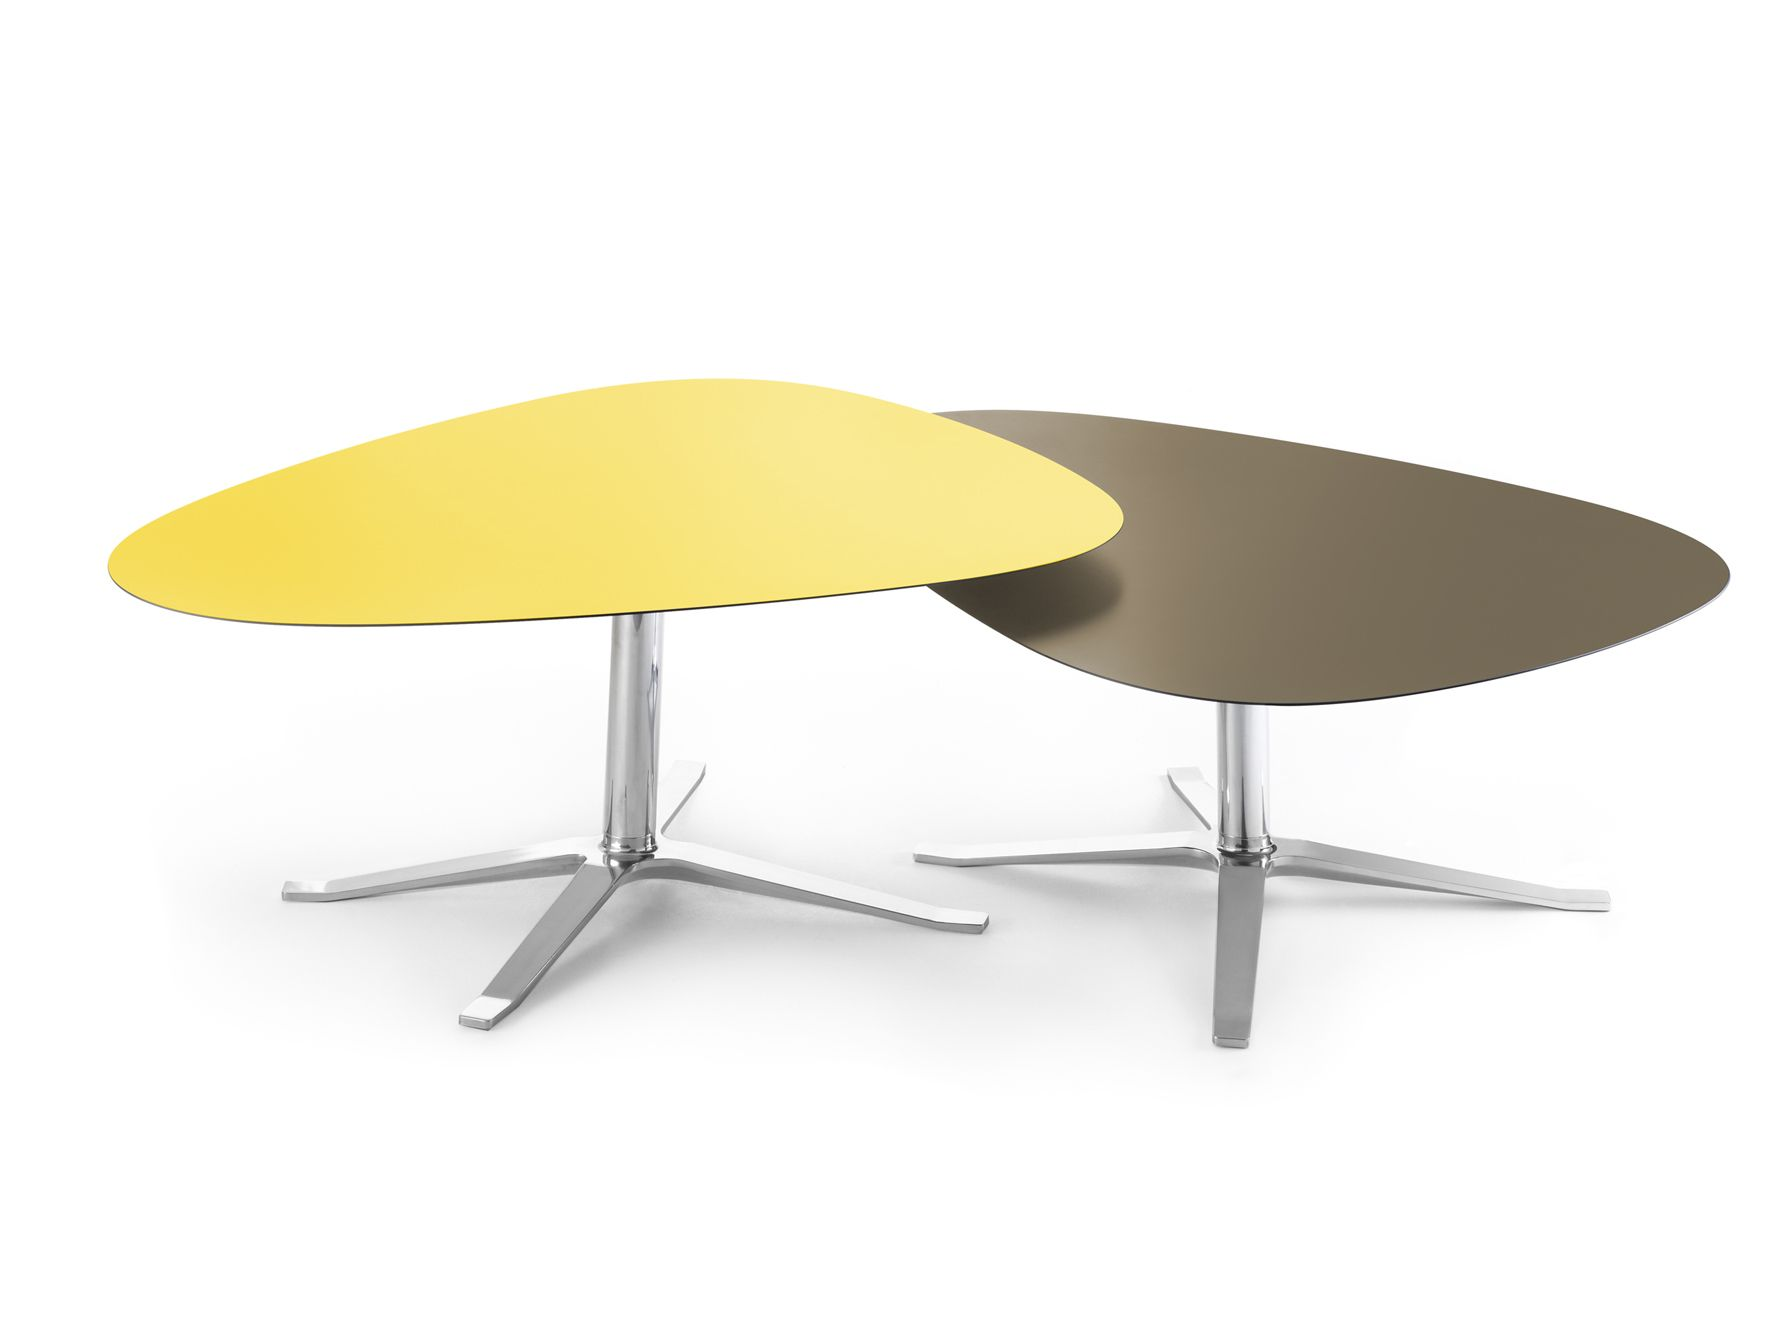 Oval aluminium and wood coffee table with 4 star base CUMULUS by